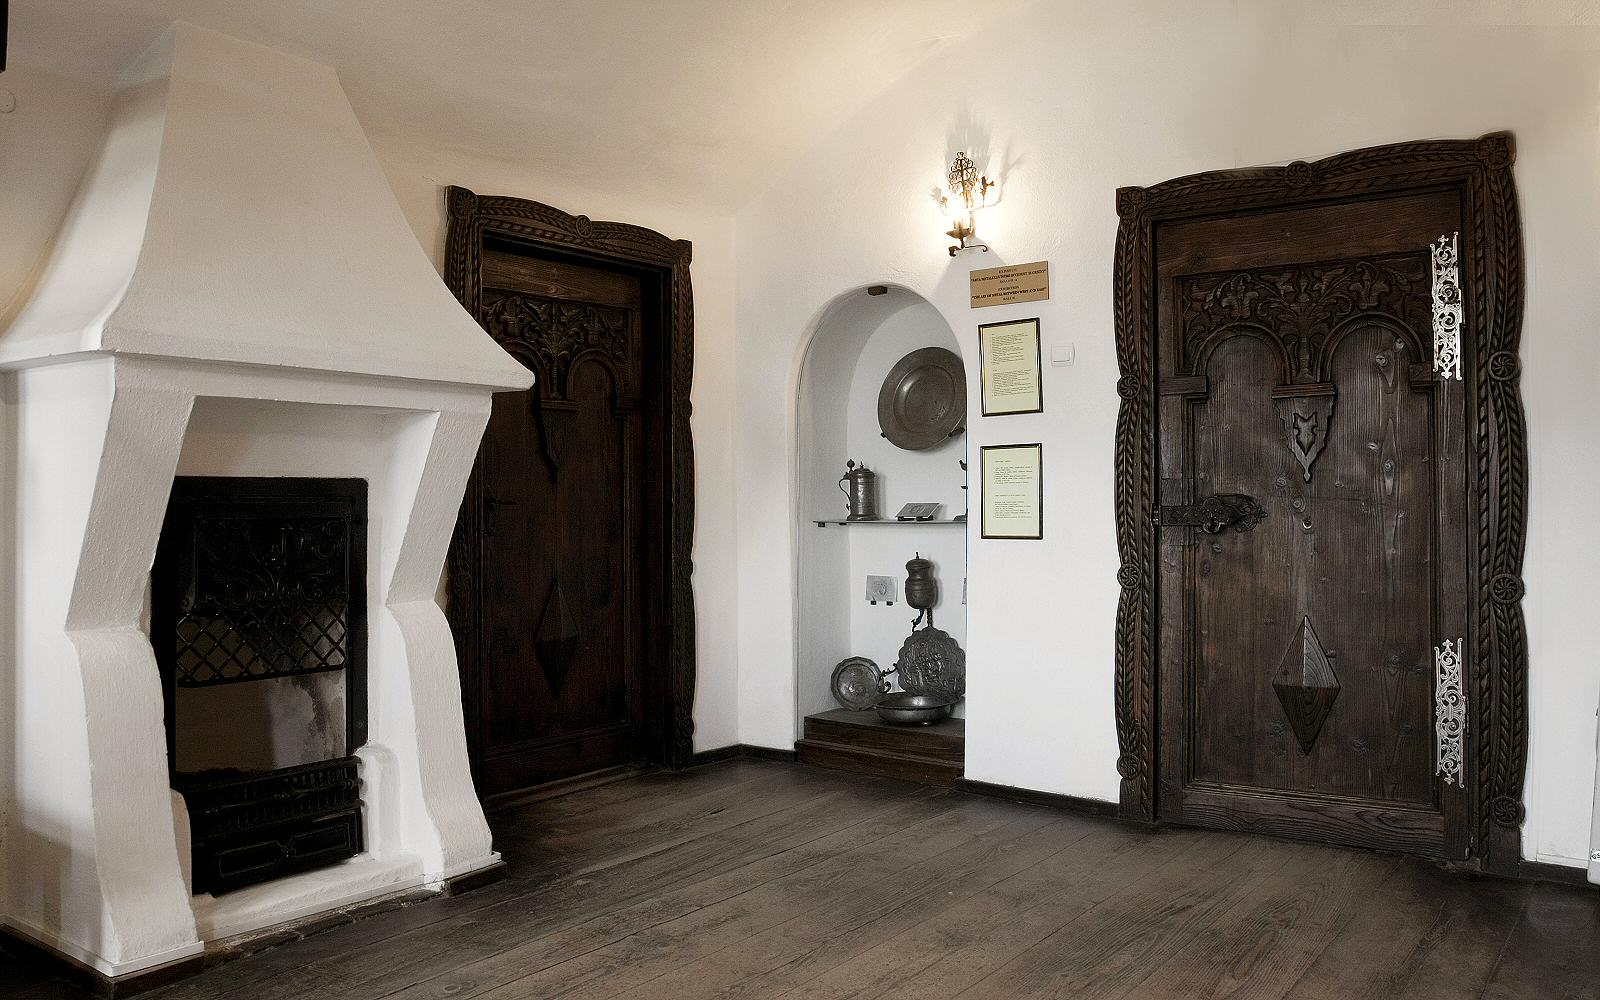 The living quarters are decorated in a more welcoming manner. using a lot of wood